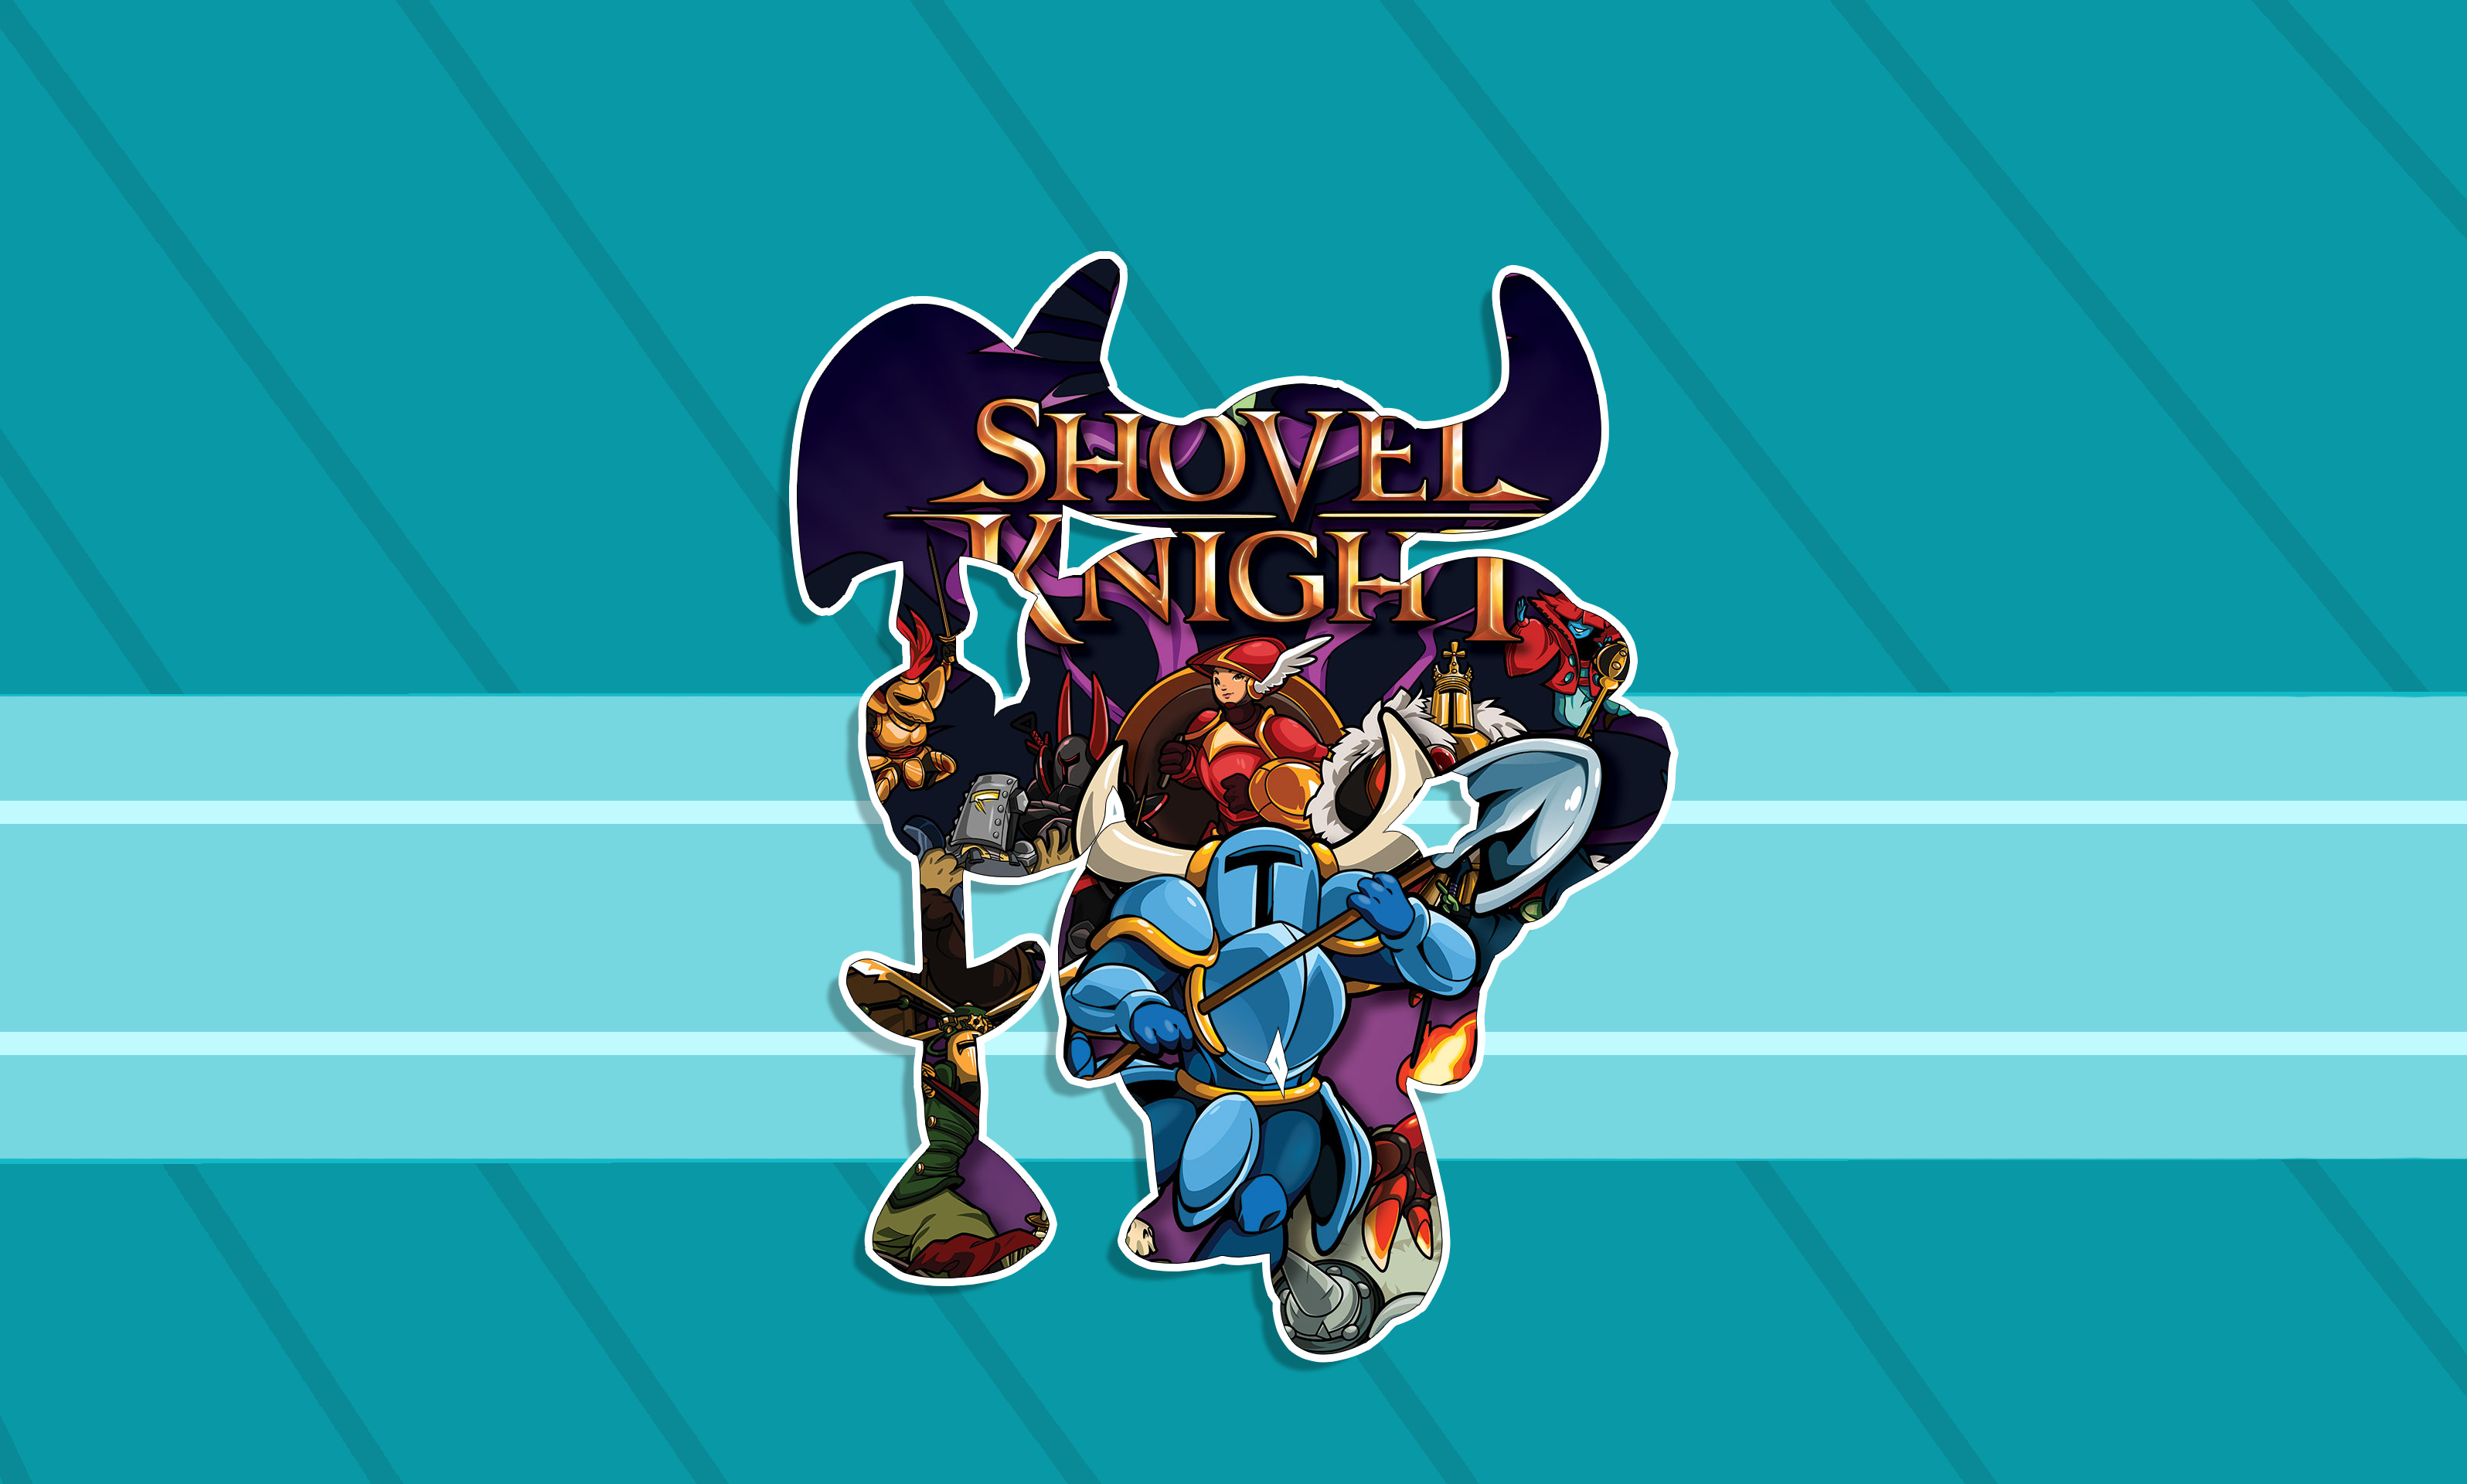 Shovel Knight Wallpaper I Made Music Indieartist Chicago